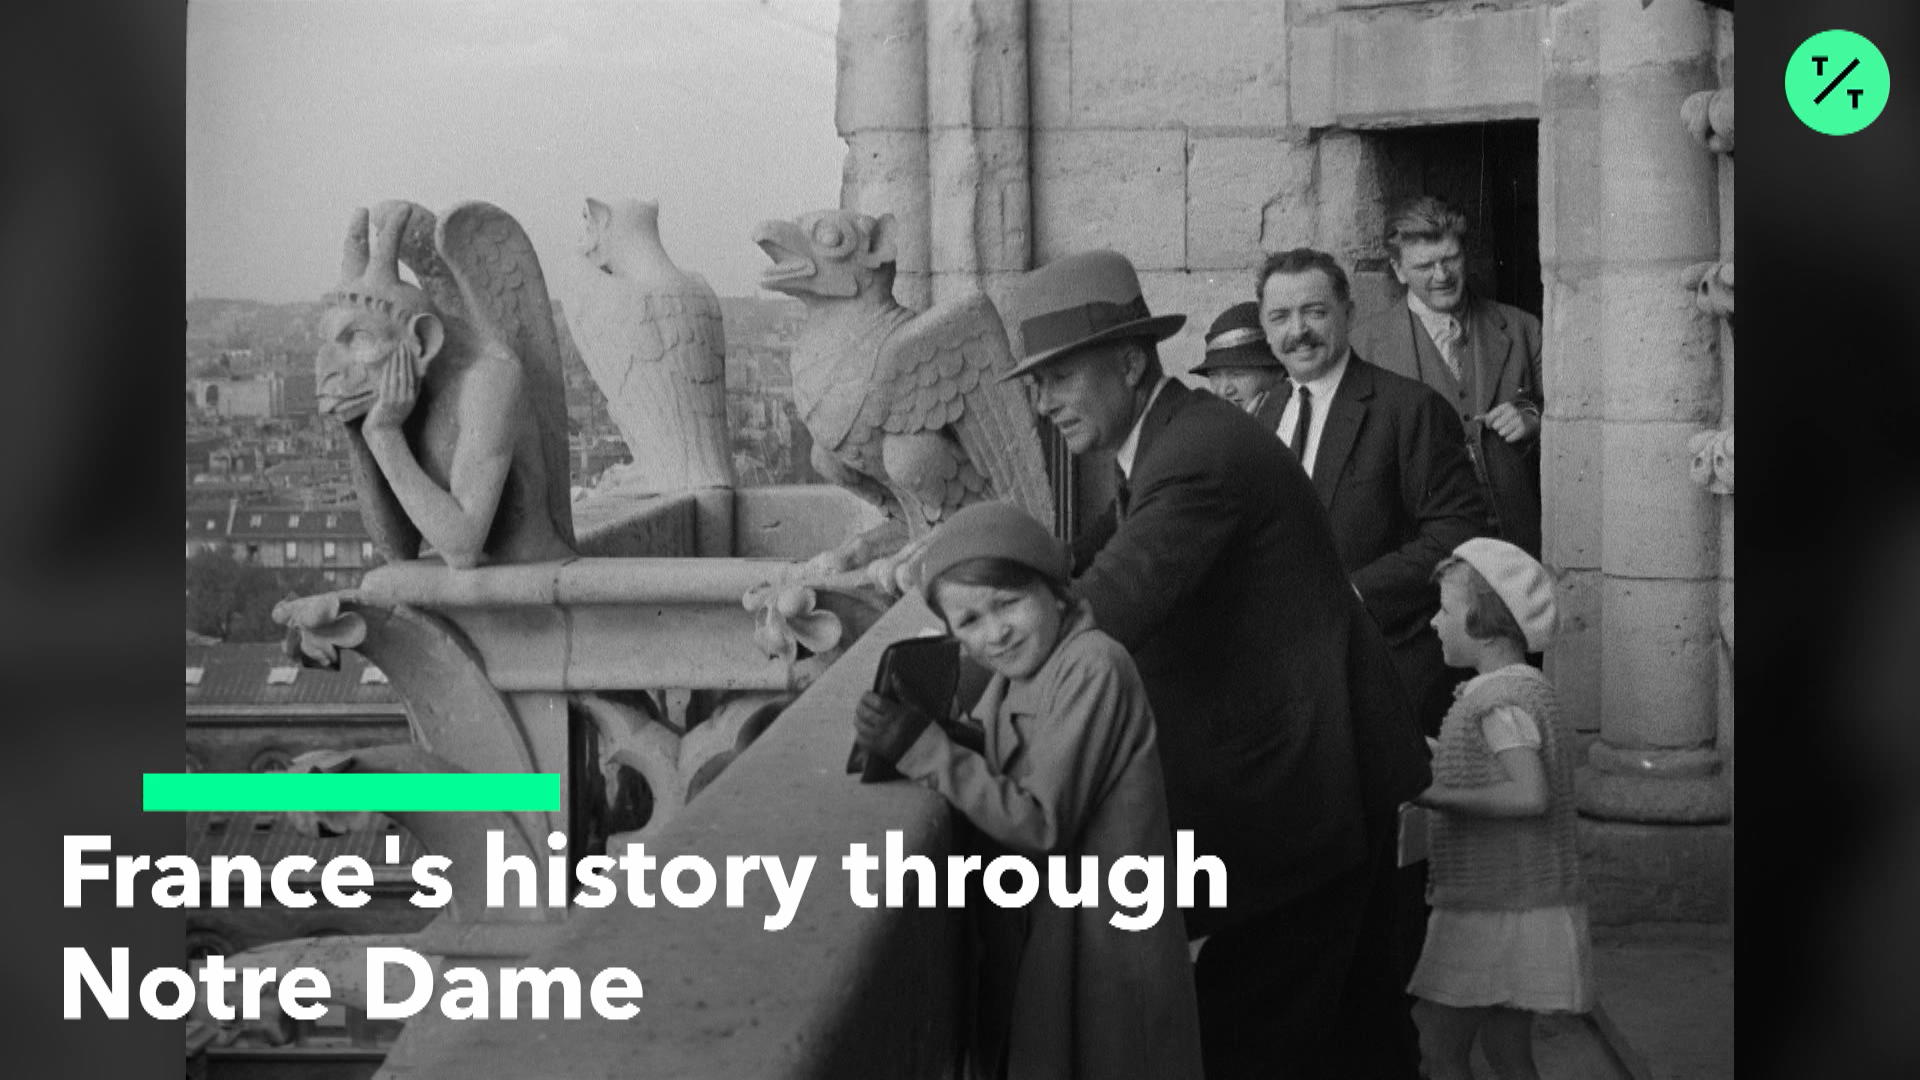 France's history through Notre Dame